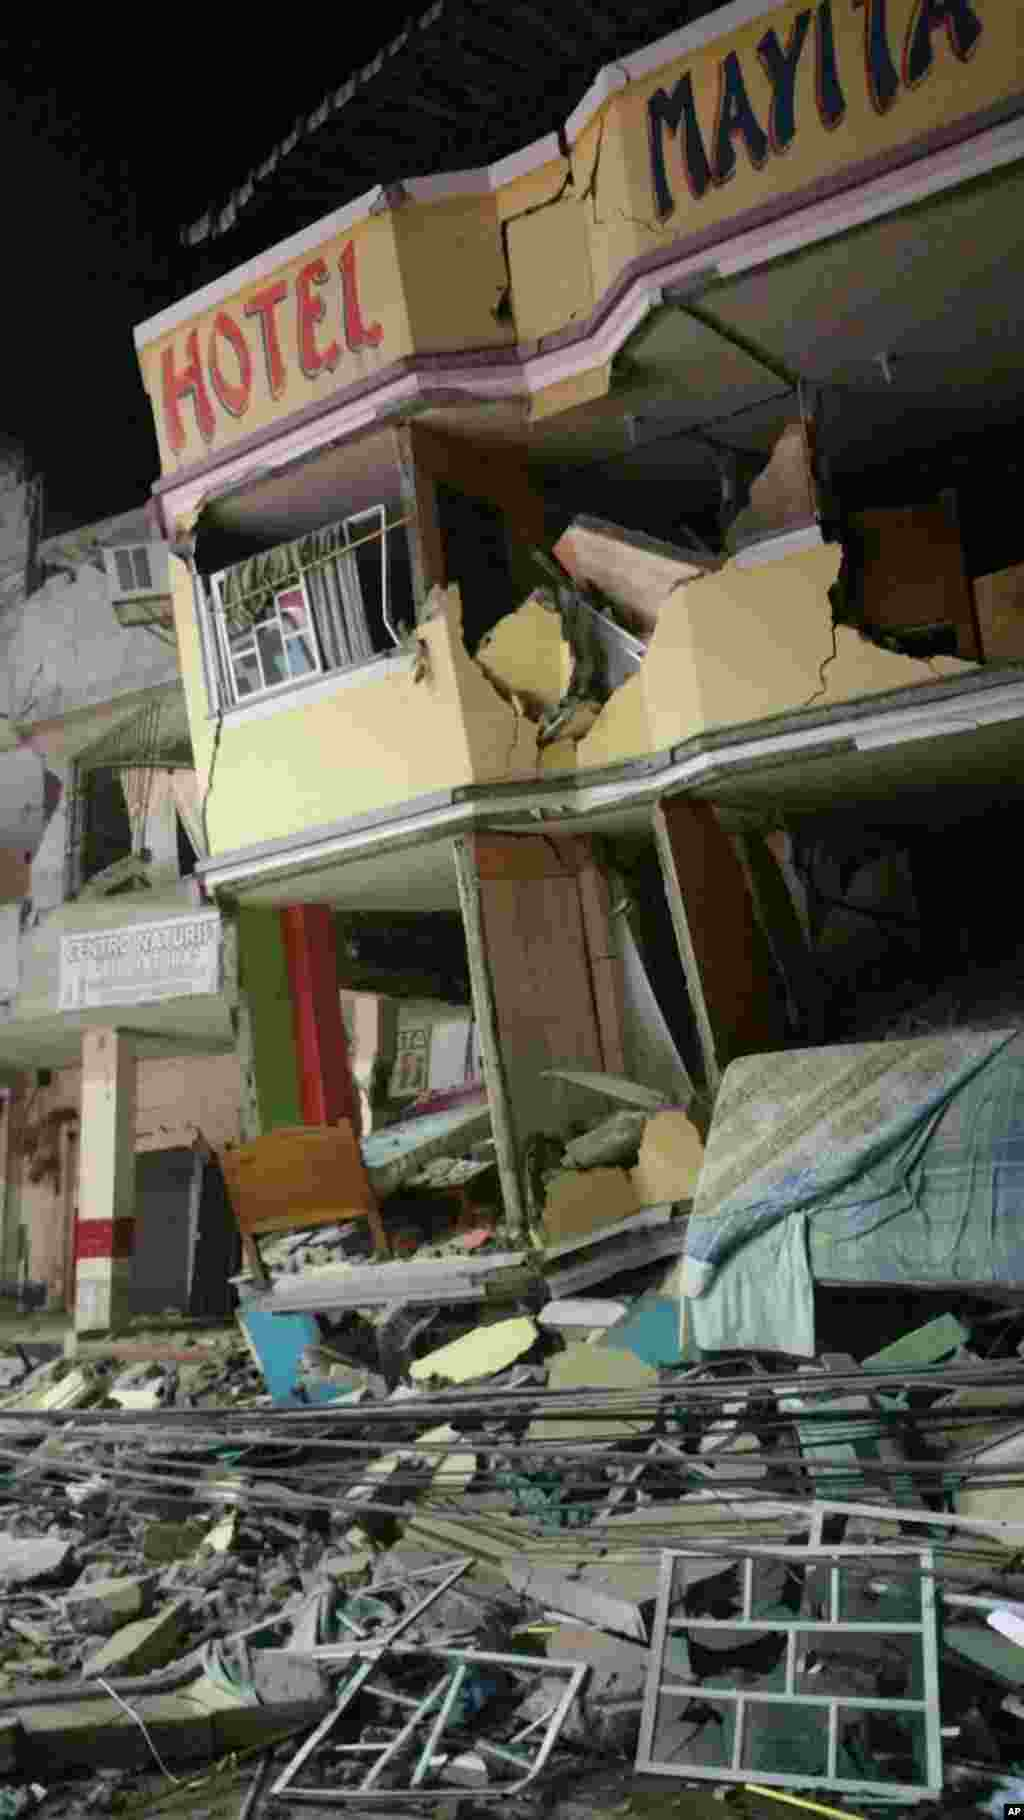 An hotel barely stands after an earthquake in the town of Manta, Ecuador, April 16, 2016.